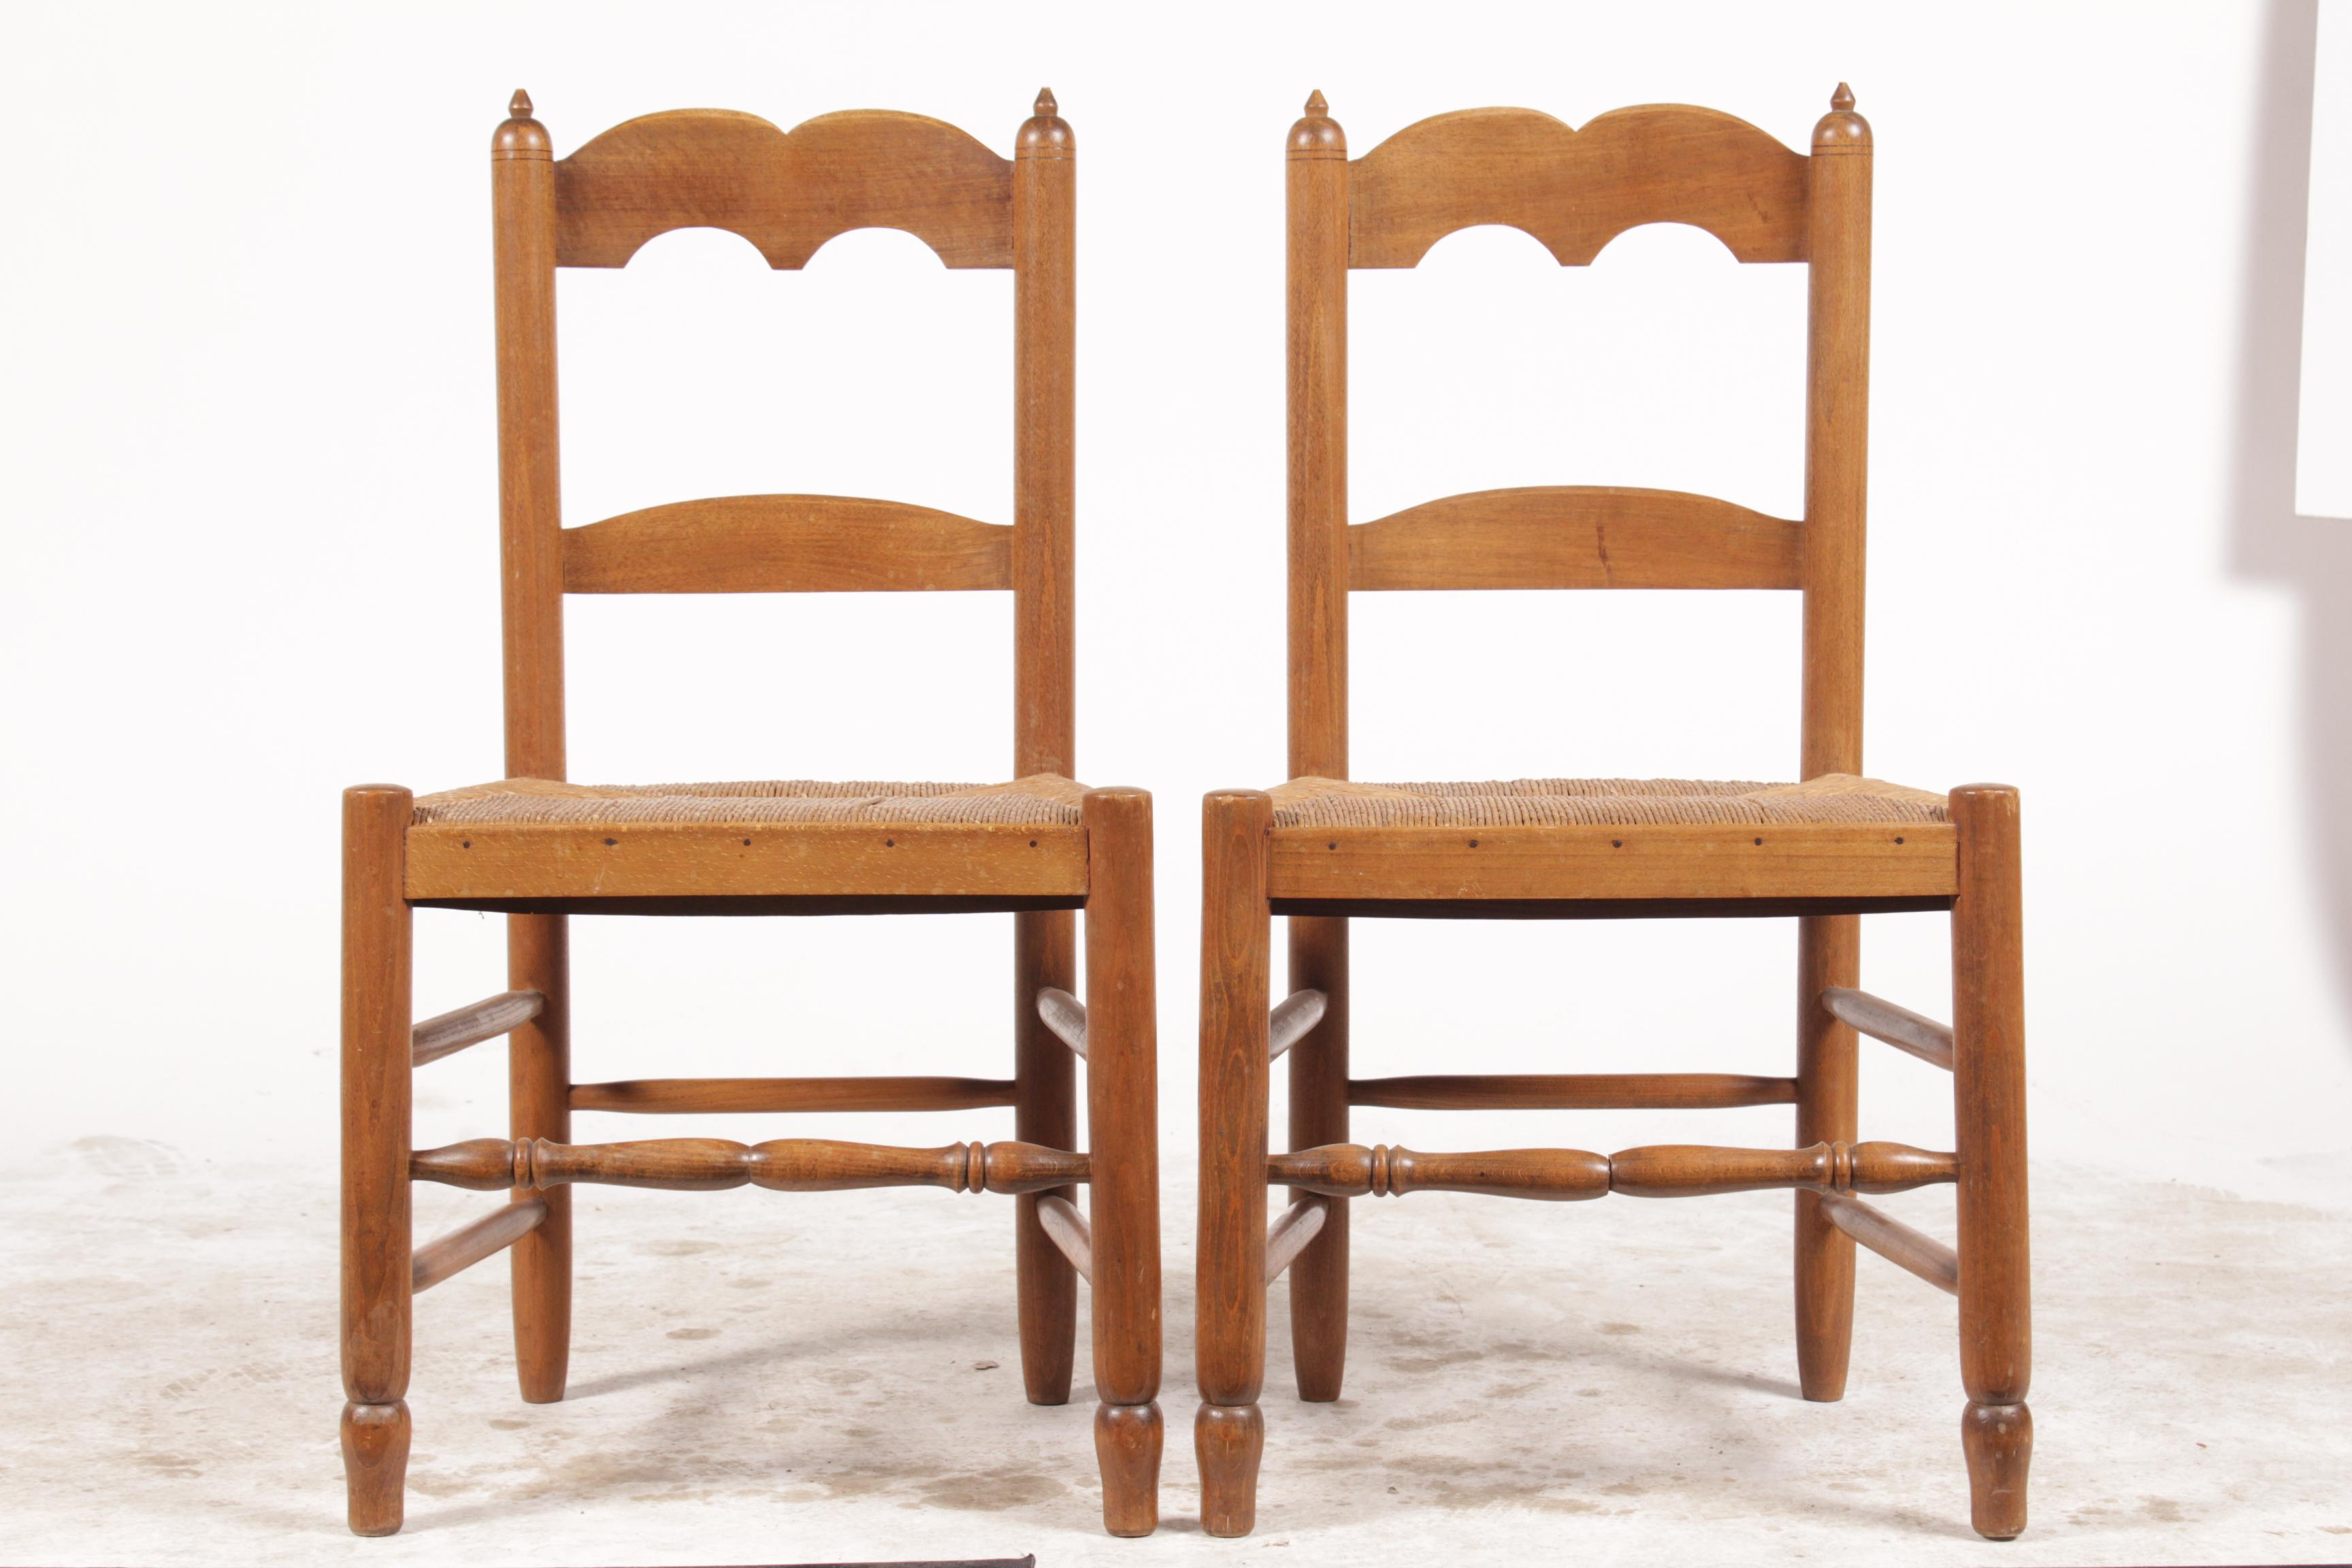 Delightful Pair Of Petite French Country Style Chairs Featuring Double Arch Splat  Backs, Finials And